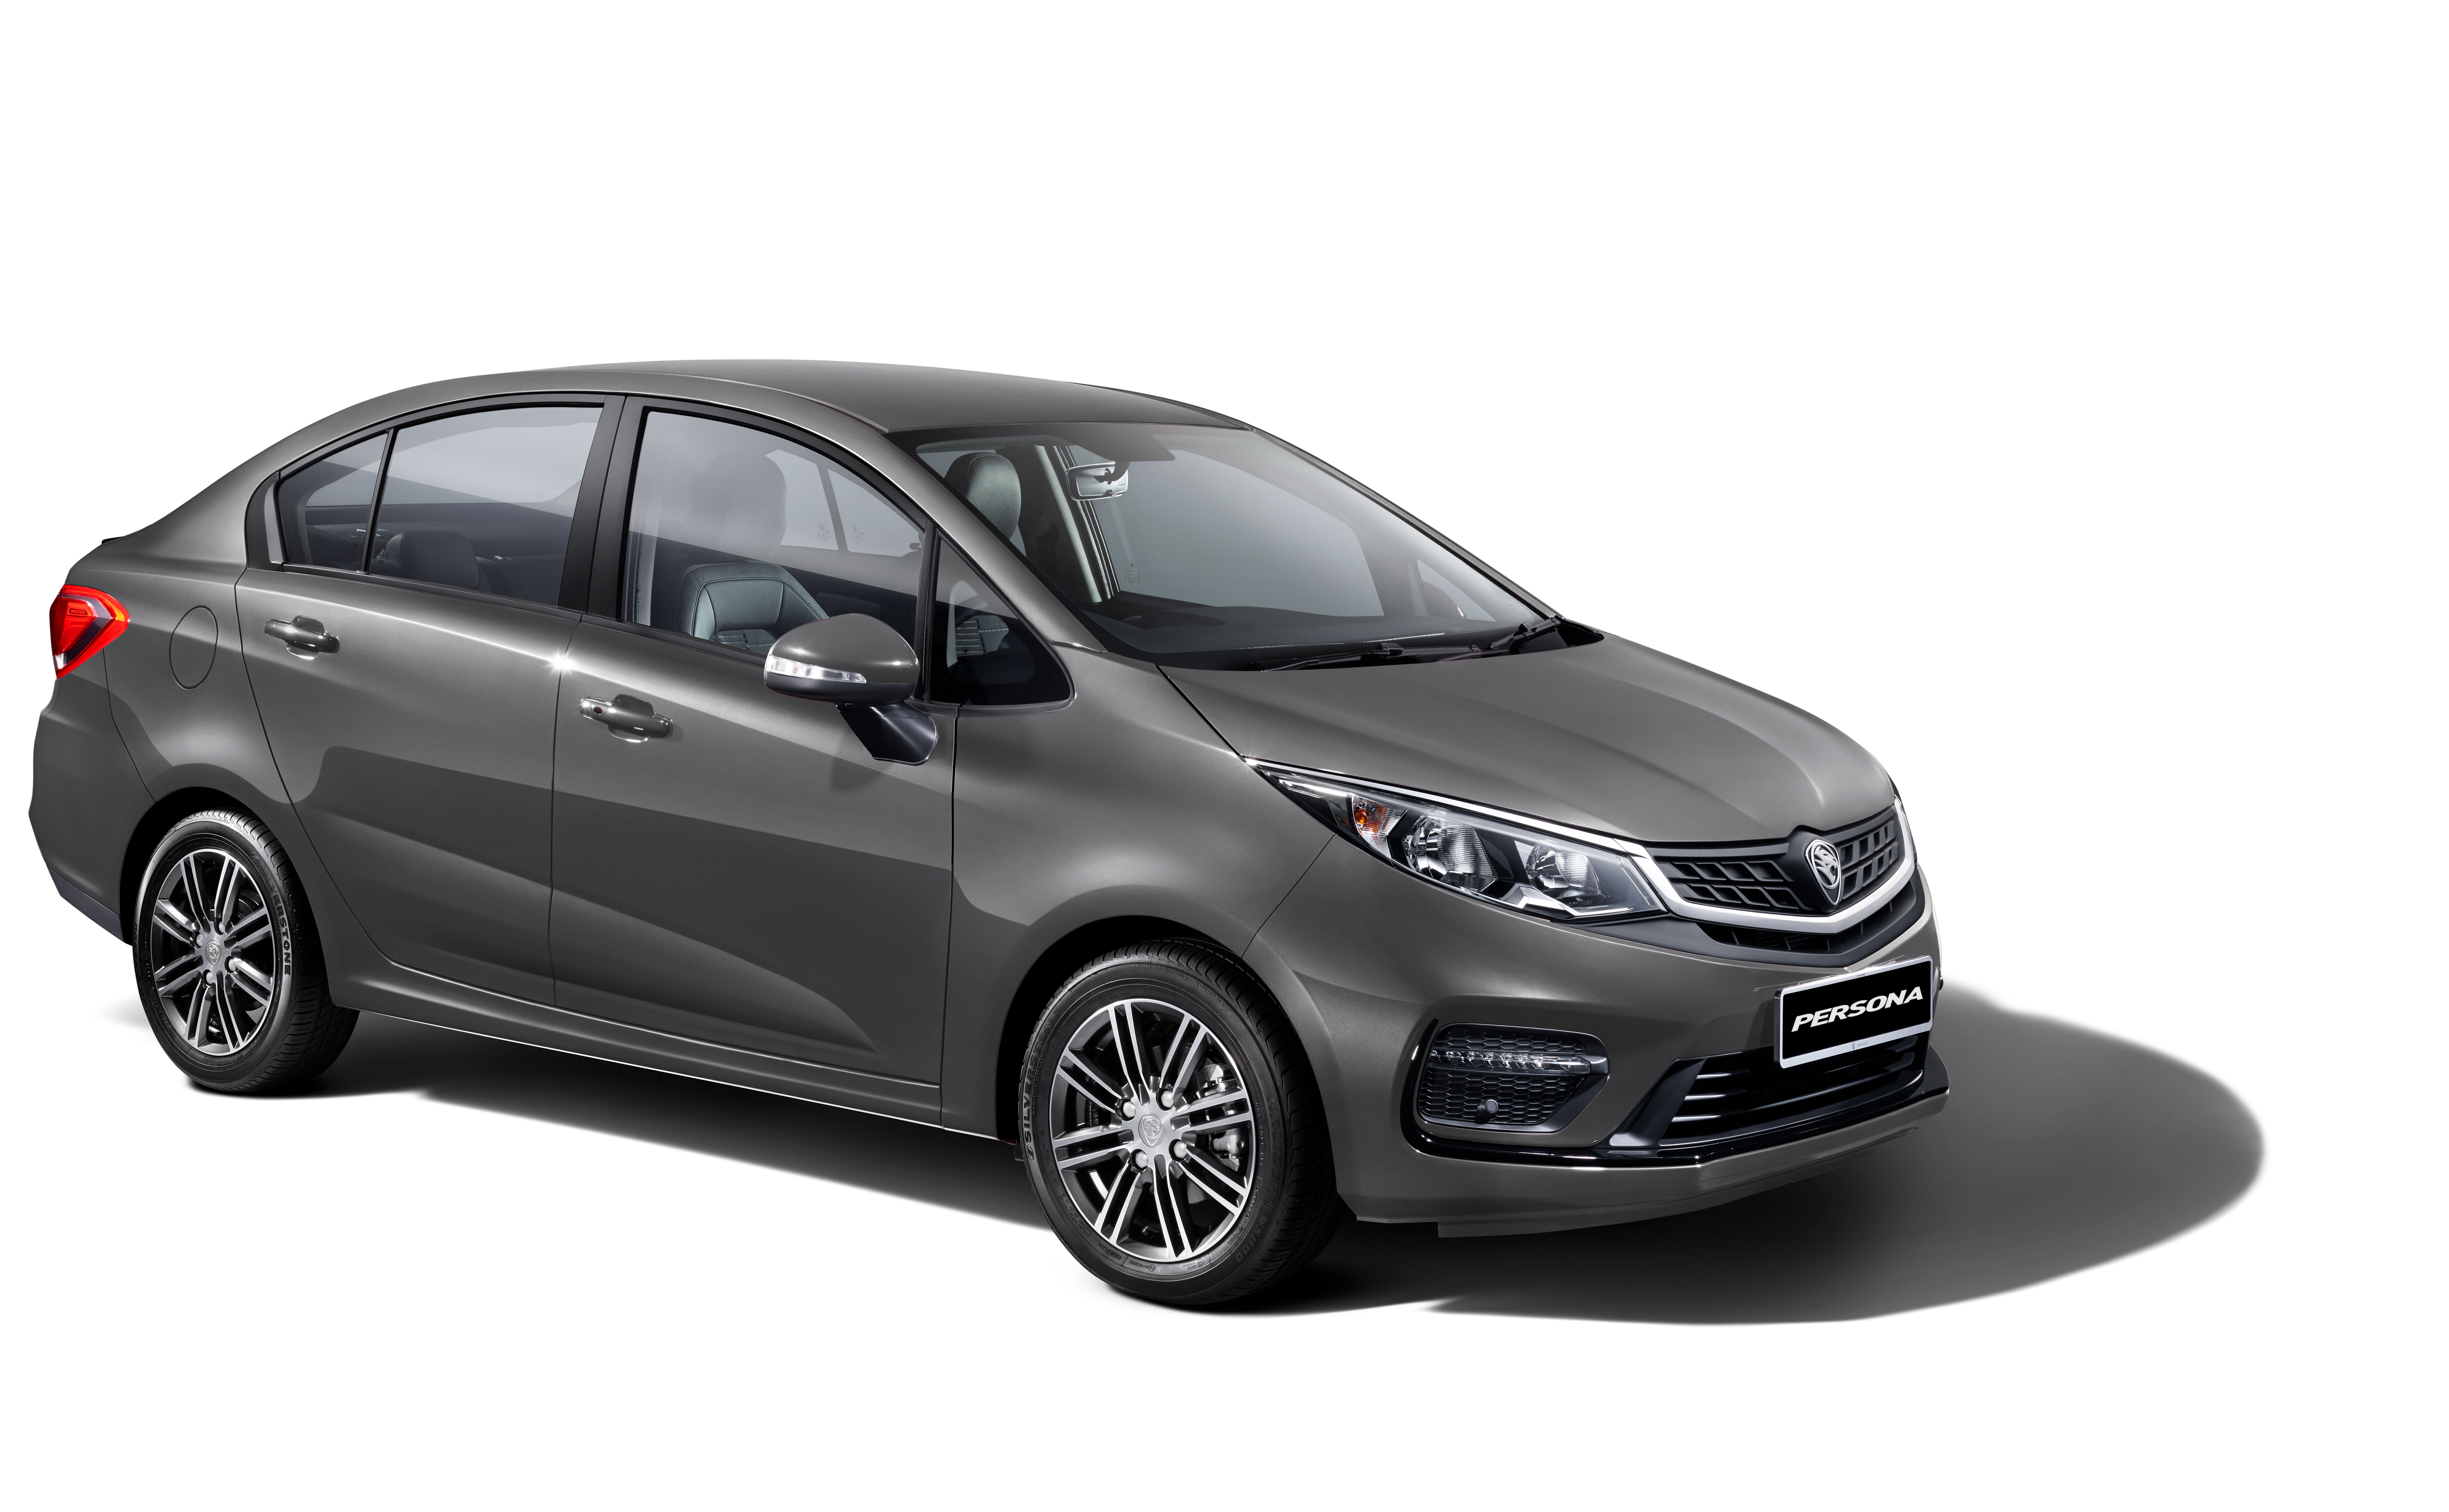 2019 Proton Persona facelift launched – fr RM42,600 Image #1031728